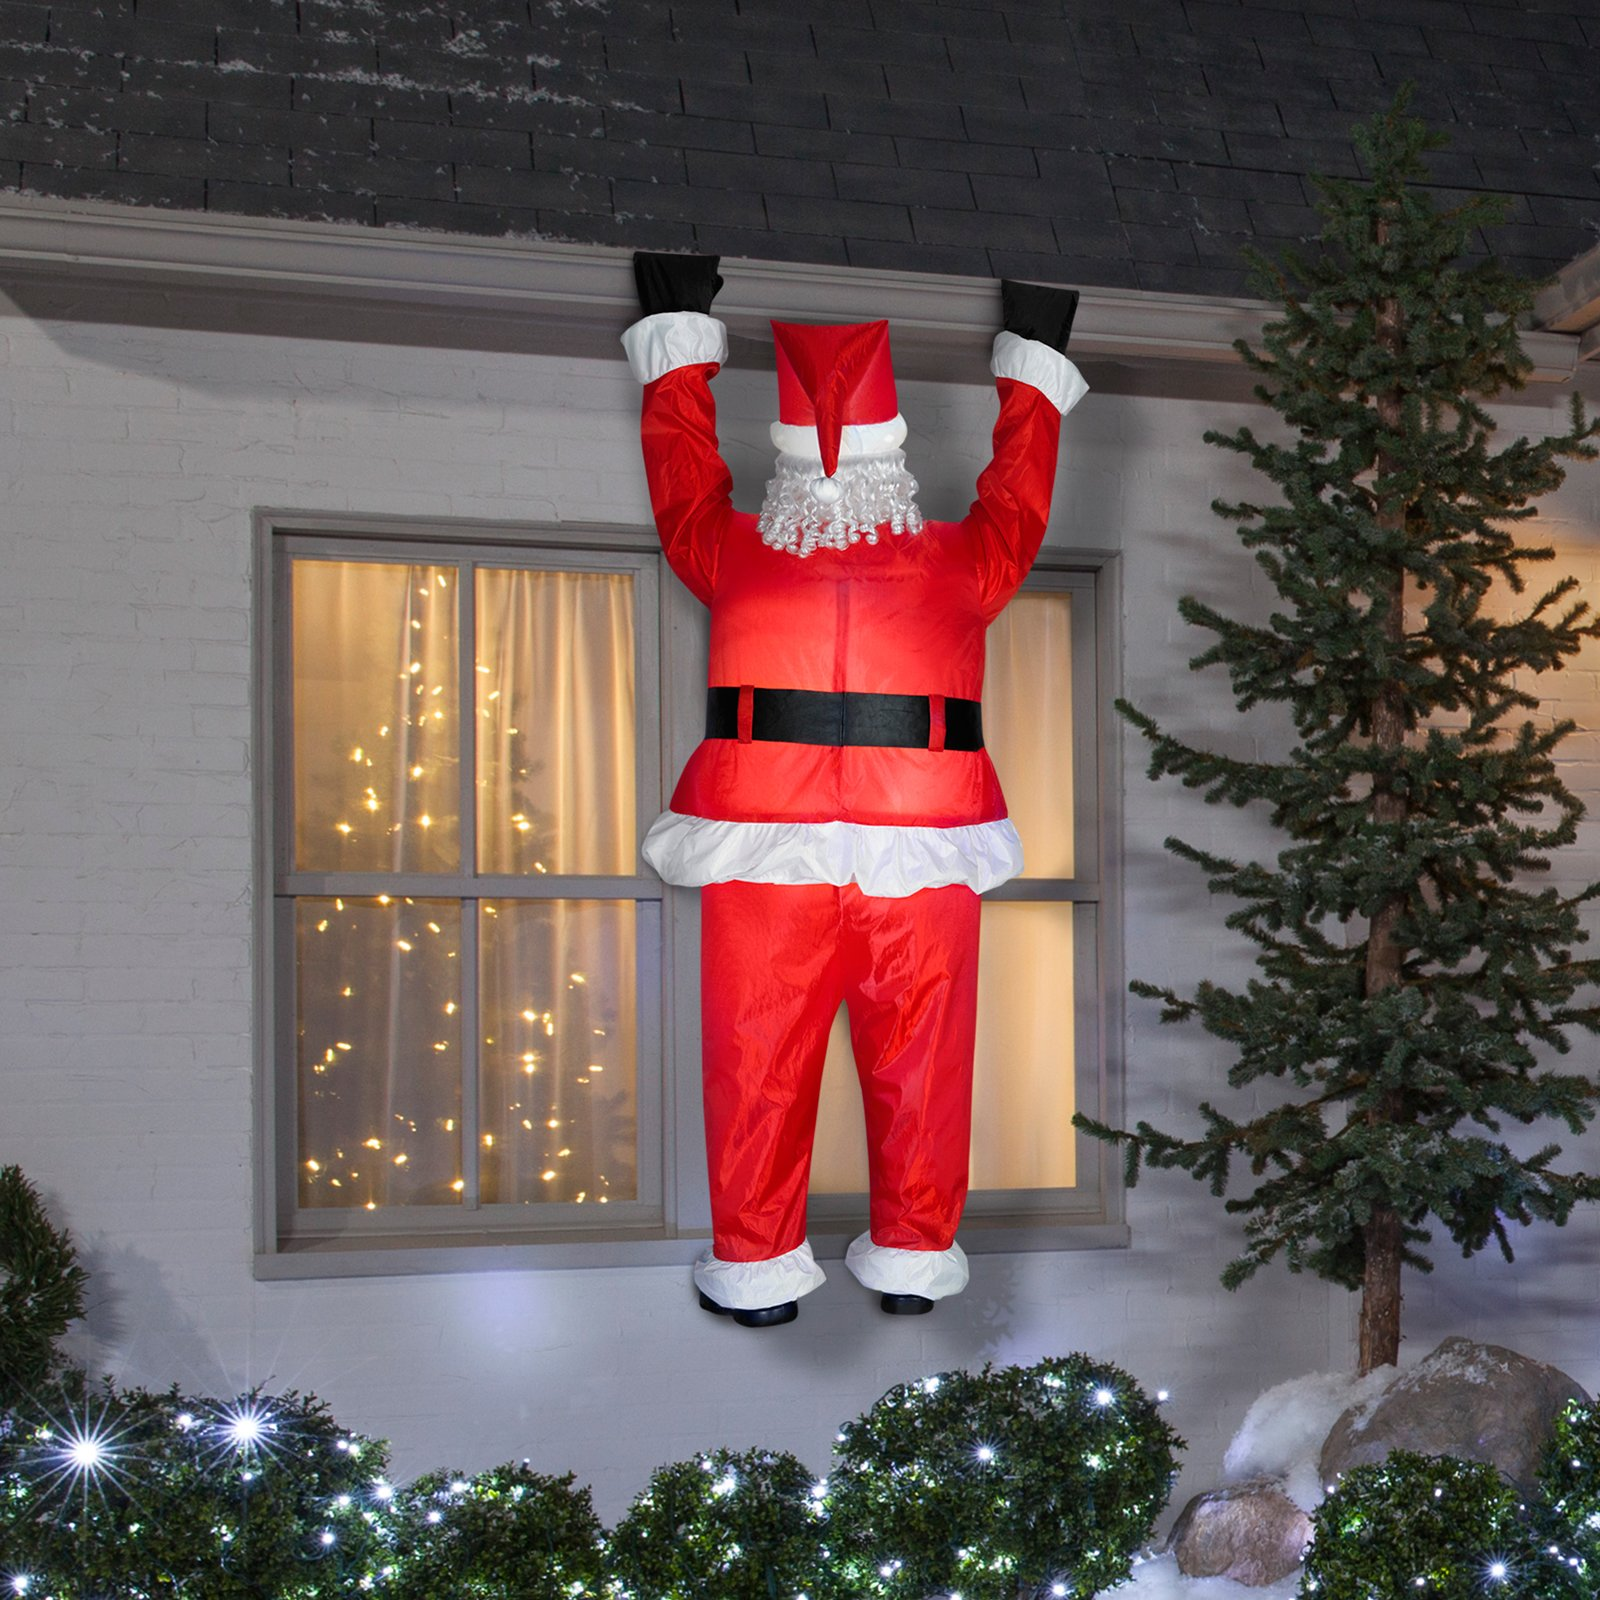 Gemmy Airblown Inflatable Realistic Santa Hanging from Gutter - Indoor Outdoor Holiday Decoration, Approximately 6.5-foot Tall by Unknown